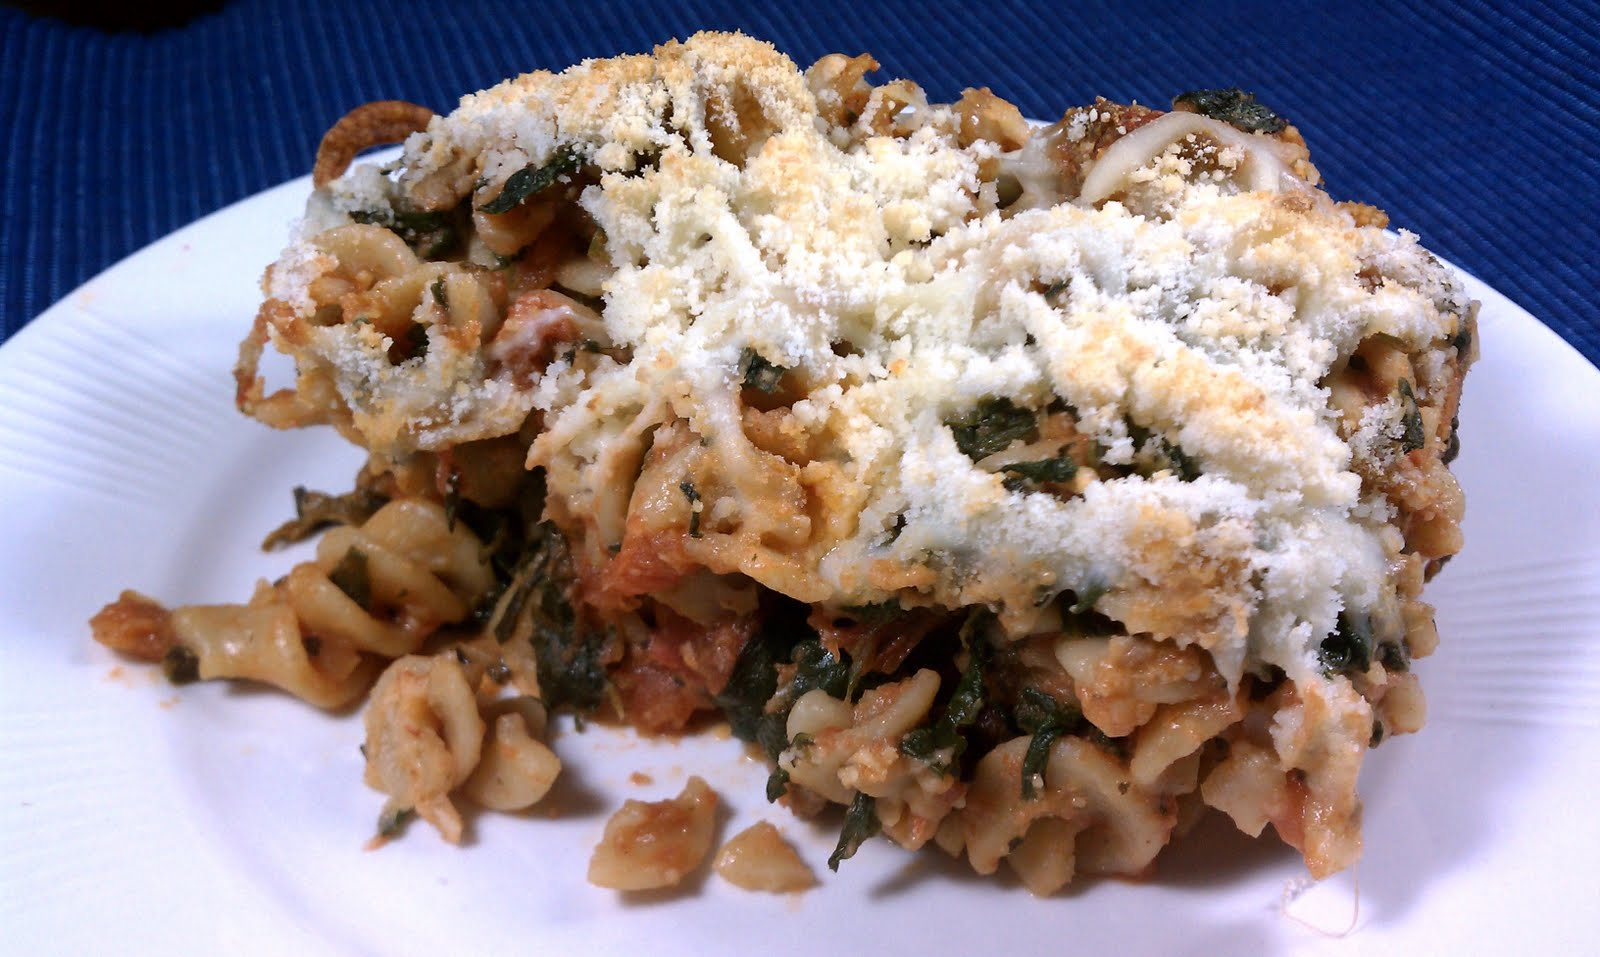 Spinach Turkey Noodle Bake